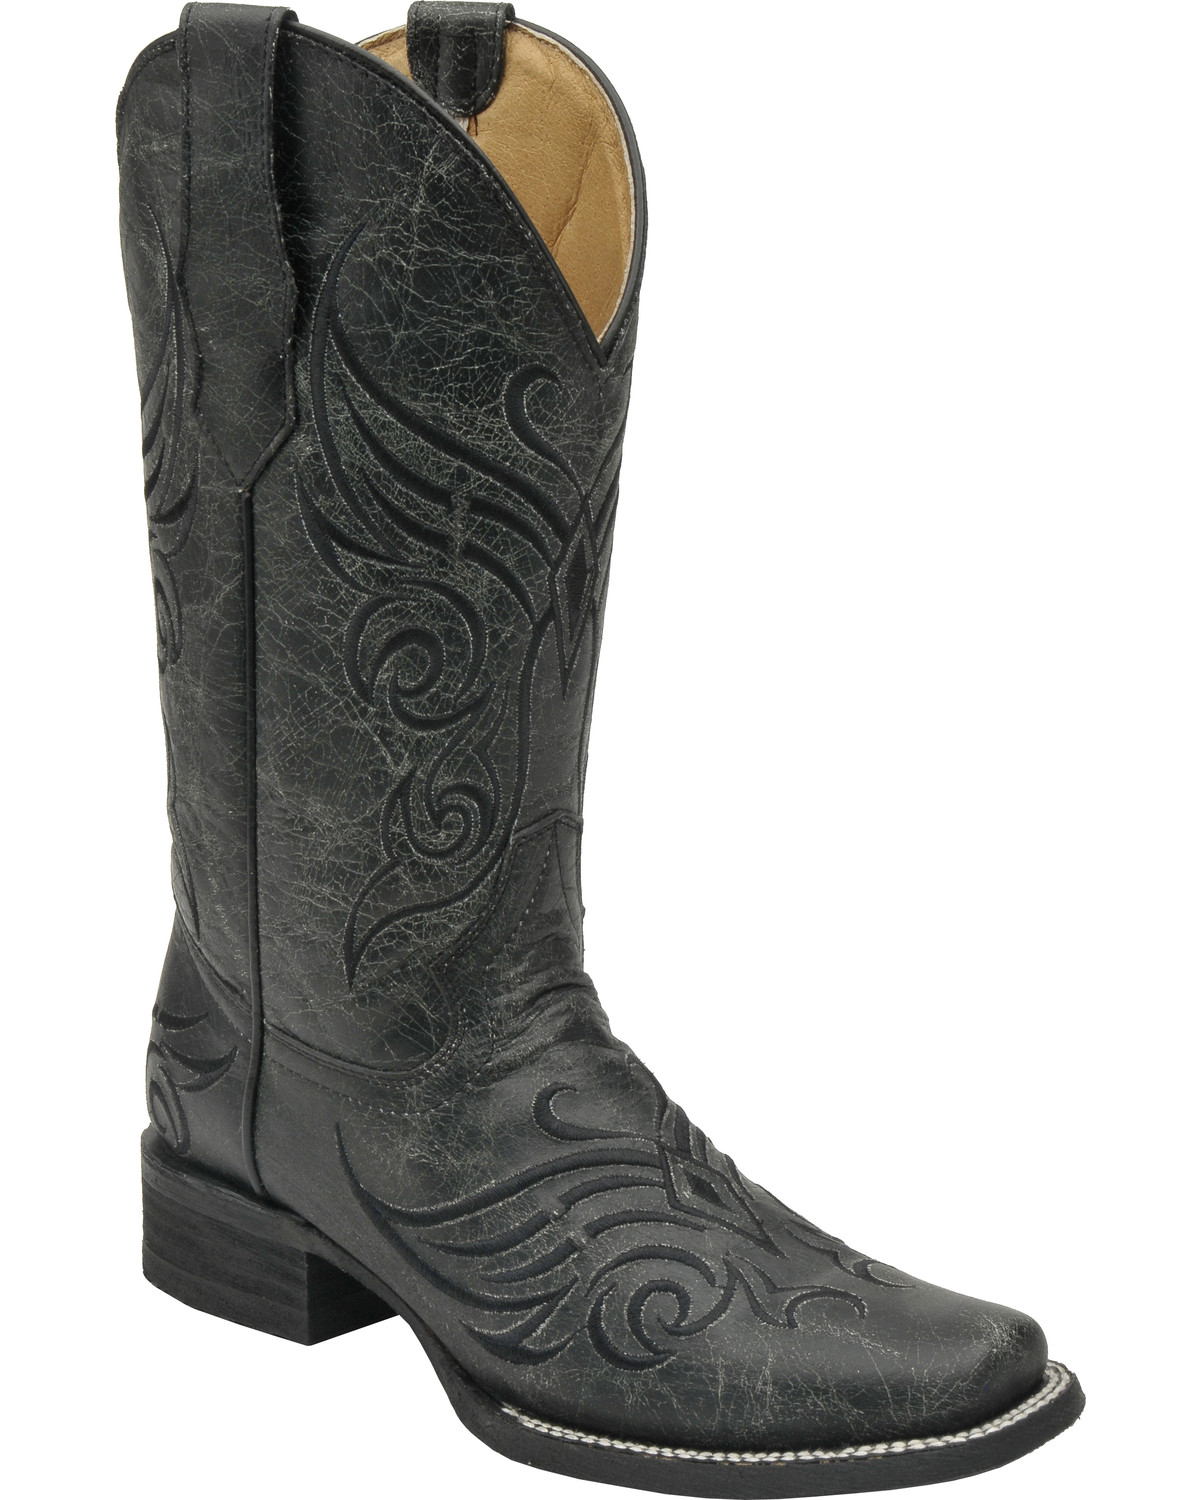 Women's Corral Boots - Sheplers